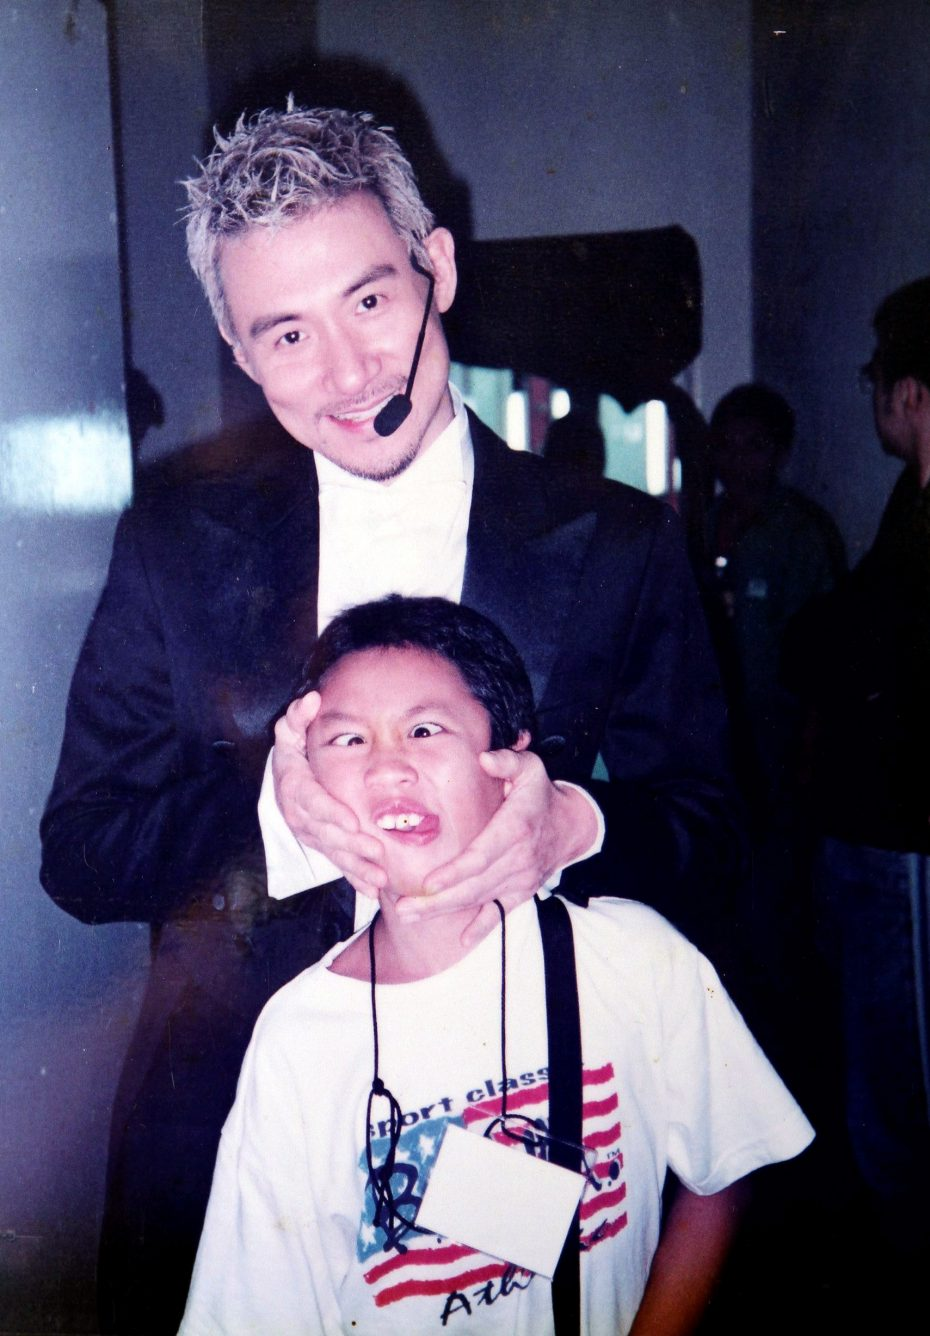 Cheung invited an 11-year-old Kam on stage at a concert in Malaysia to play the percussions. He had learnt about Kam's talent through Kam's sister, Genervie. — Handout